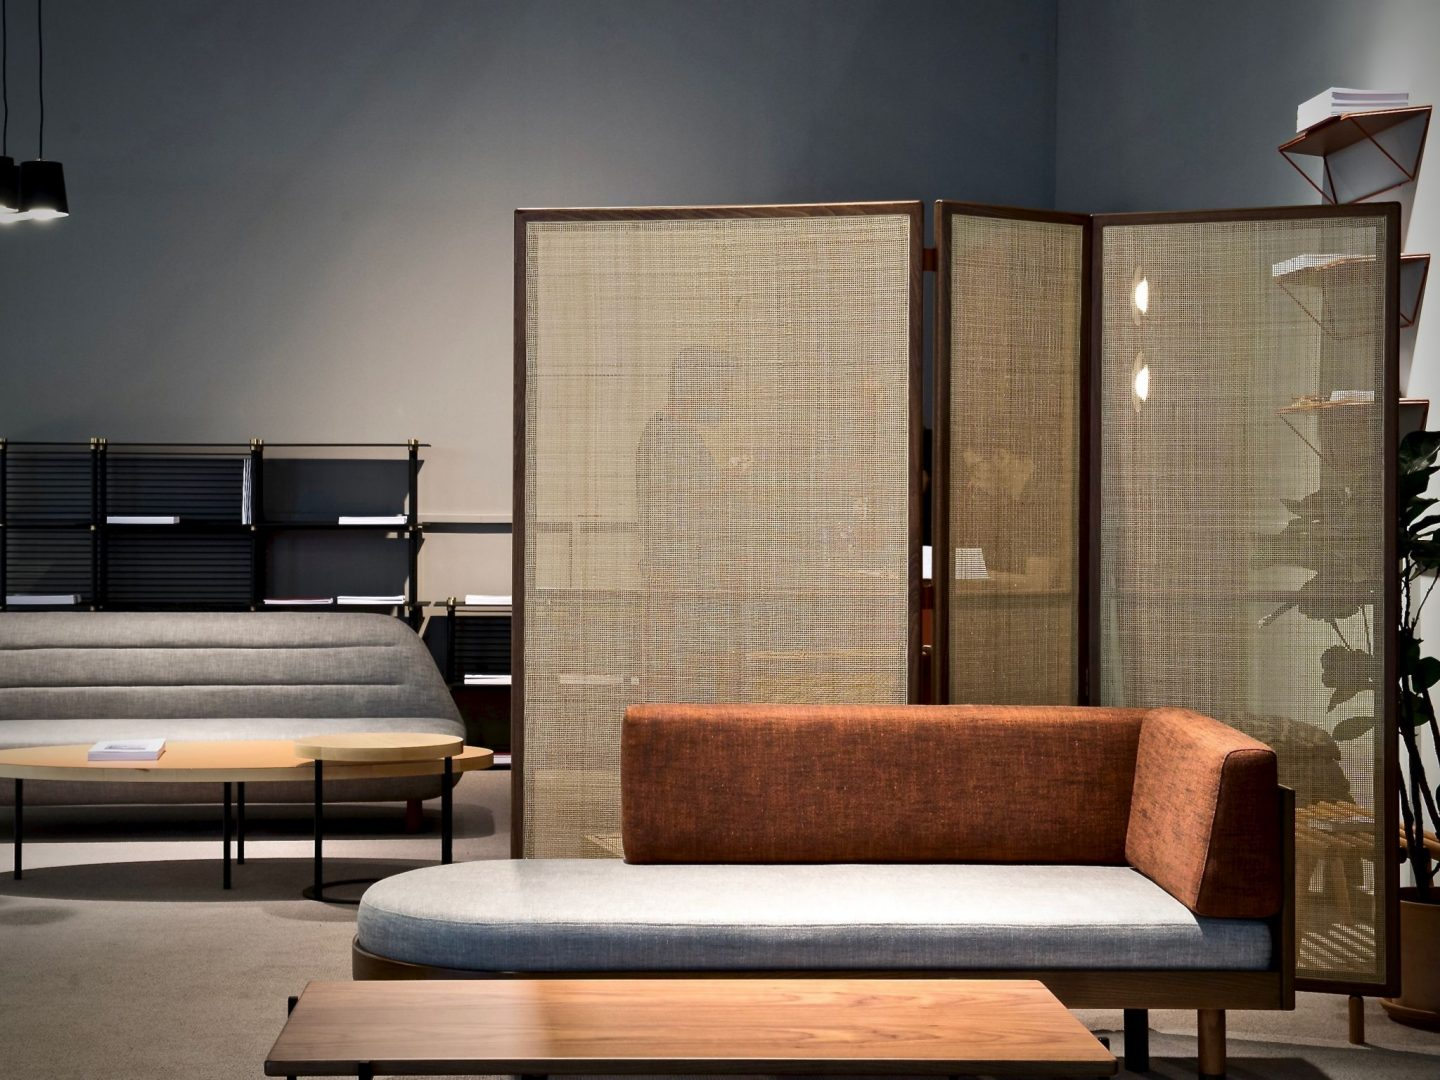 colour and form from Maison & Objet, colour trend, warm palette, rattan, natural materials,  Hello Peagreen